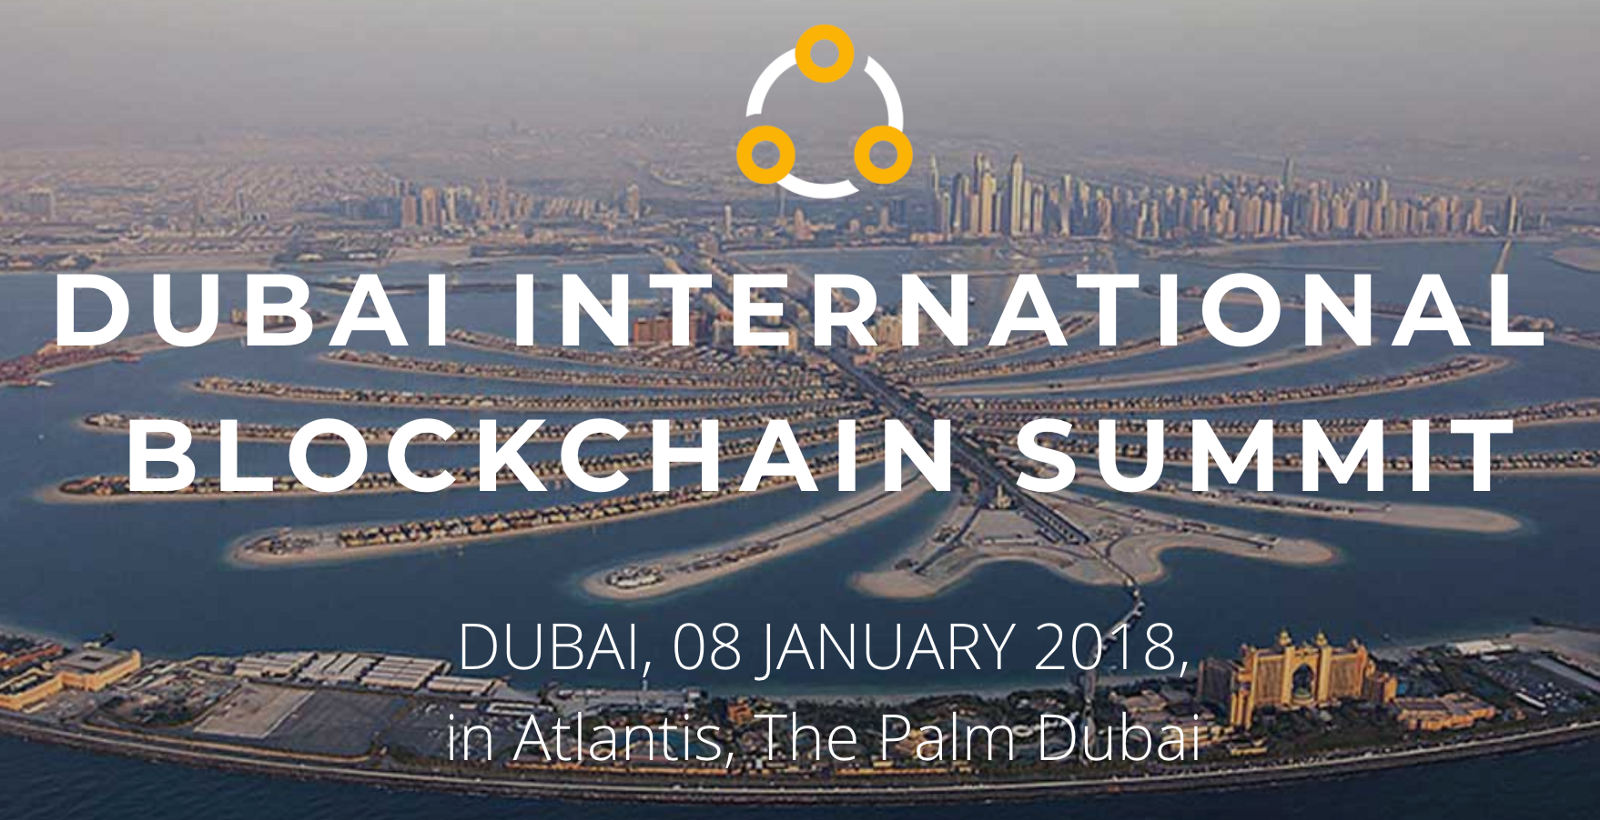 FortKnoxster speaks at the International Blockchain Summit ...